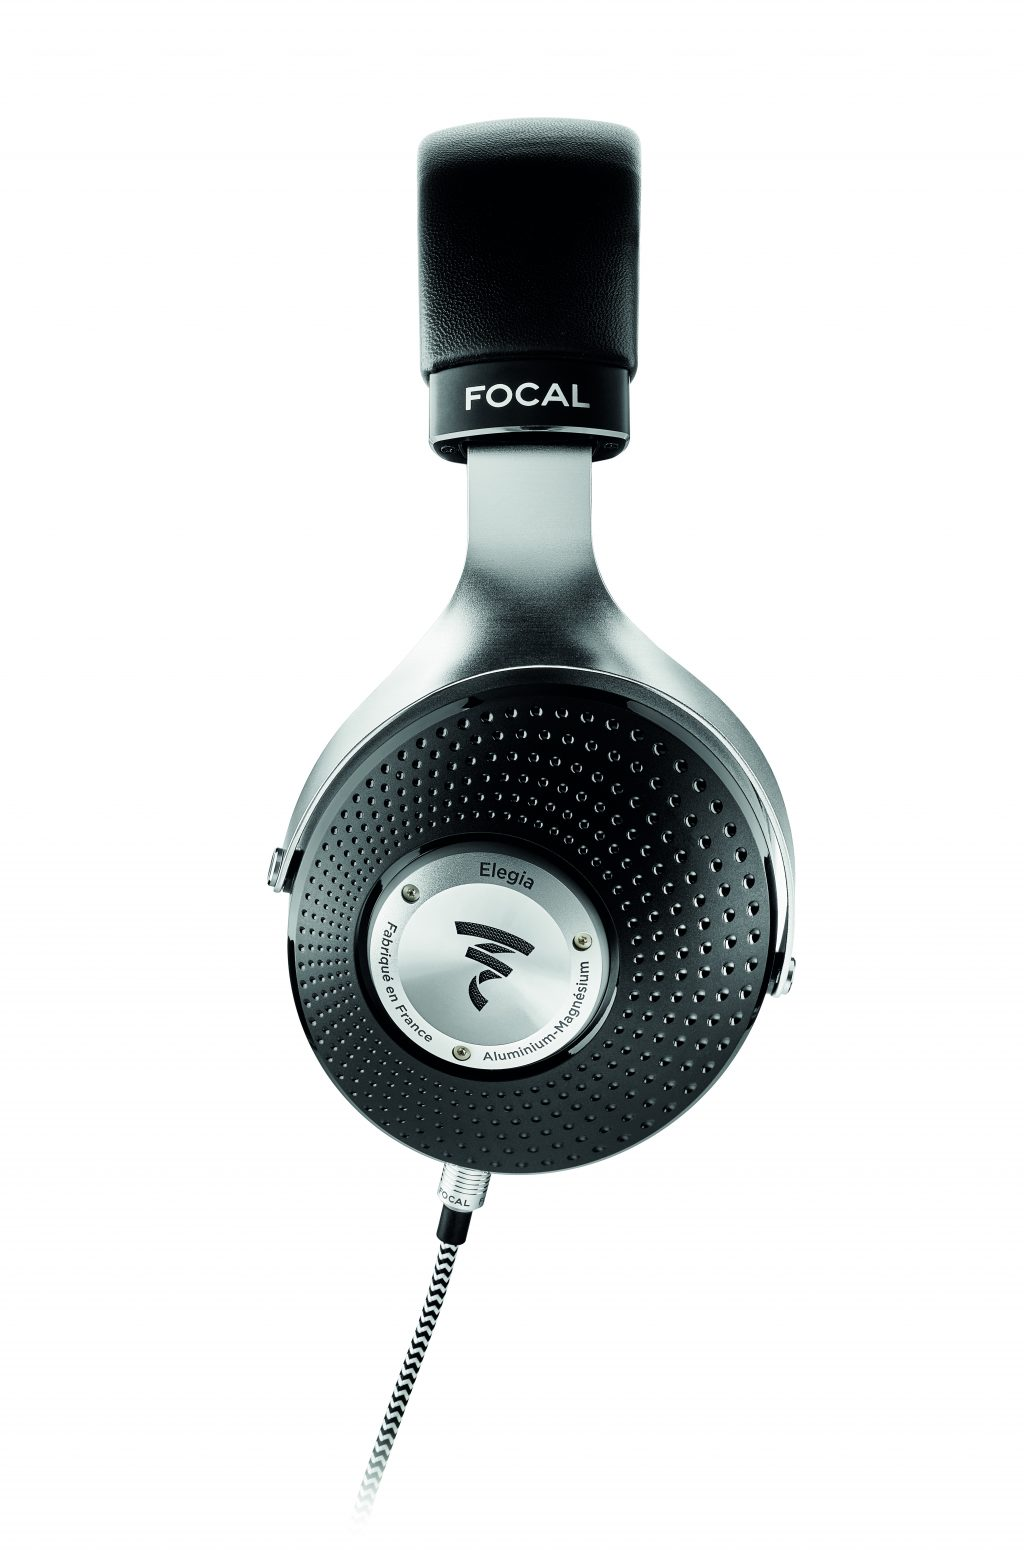 Focal Elegia closed back headphones announced